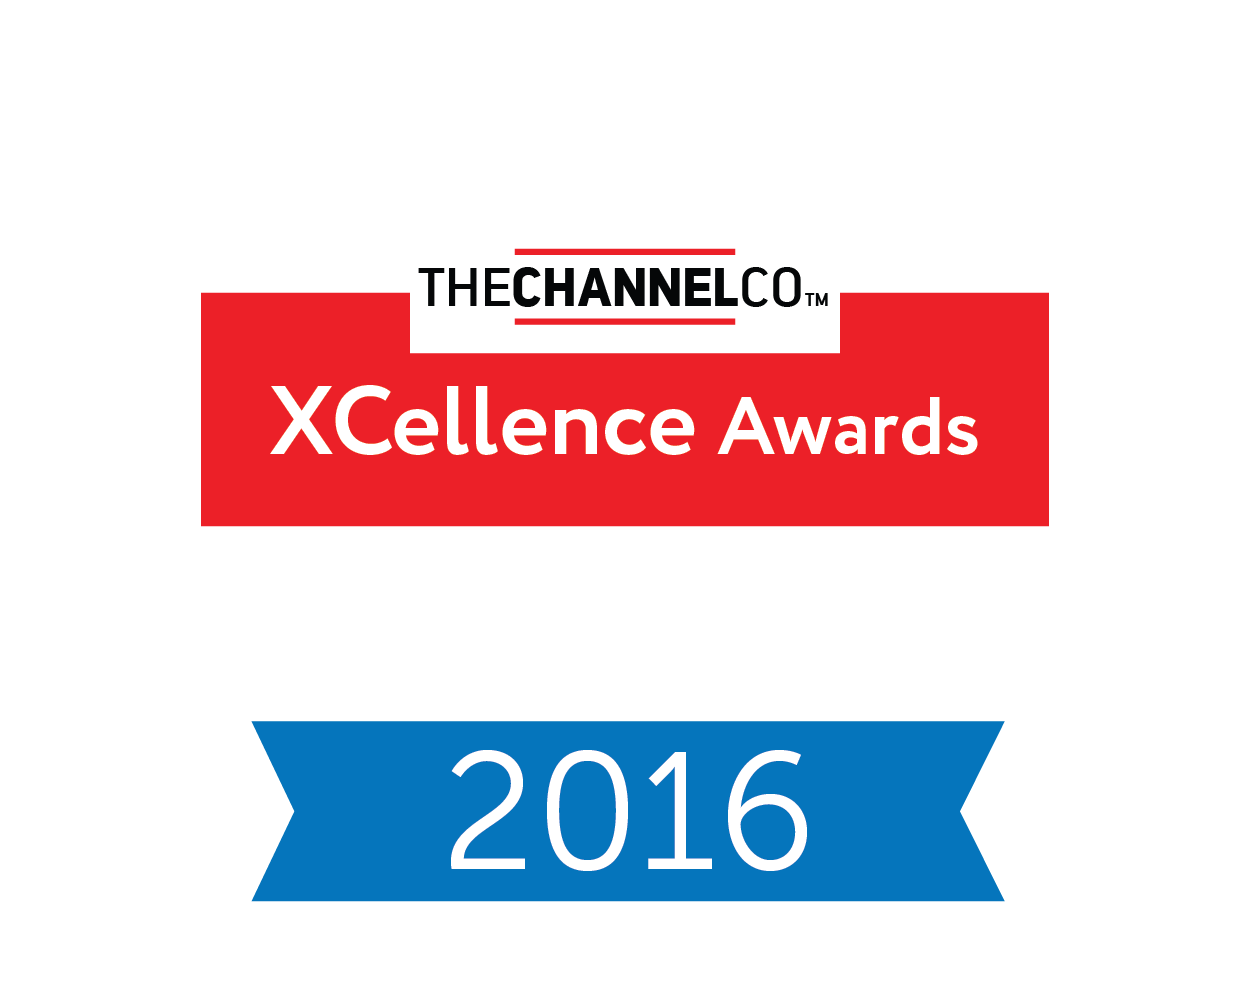 XcellenceAwards-01.png